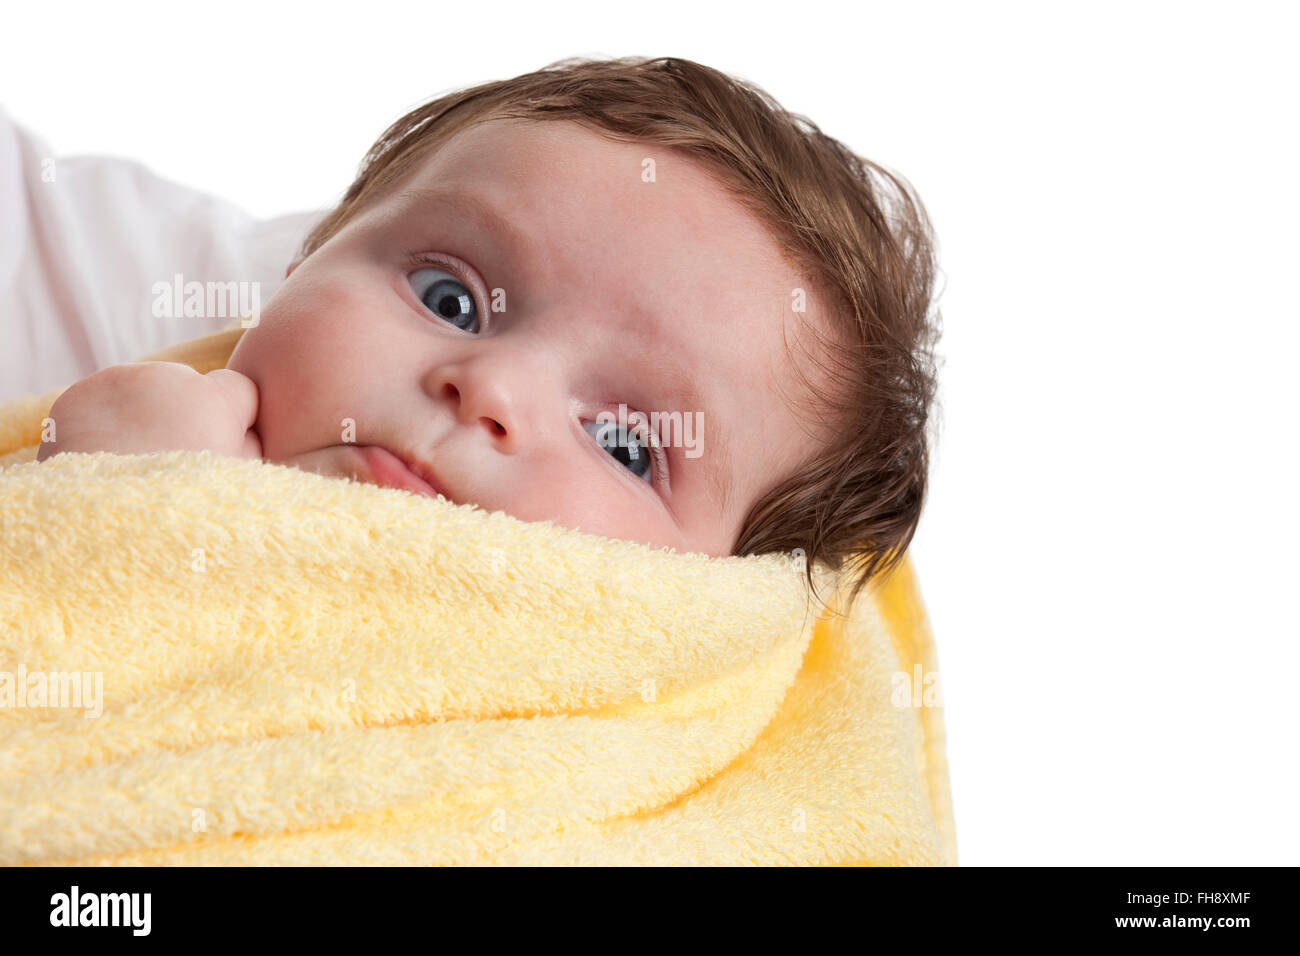 Cute little baby girl wrapped in a yellow towel on white background - Stock Image